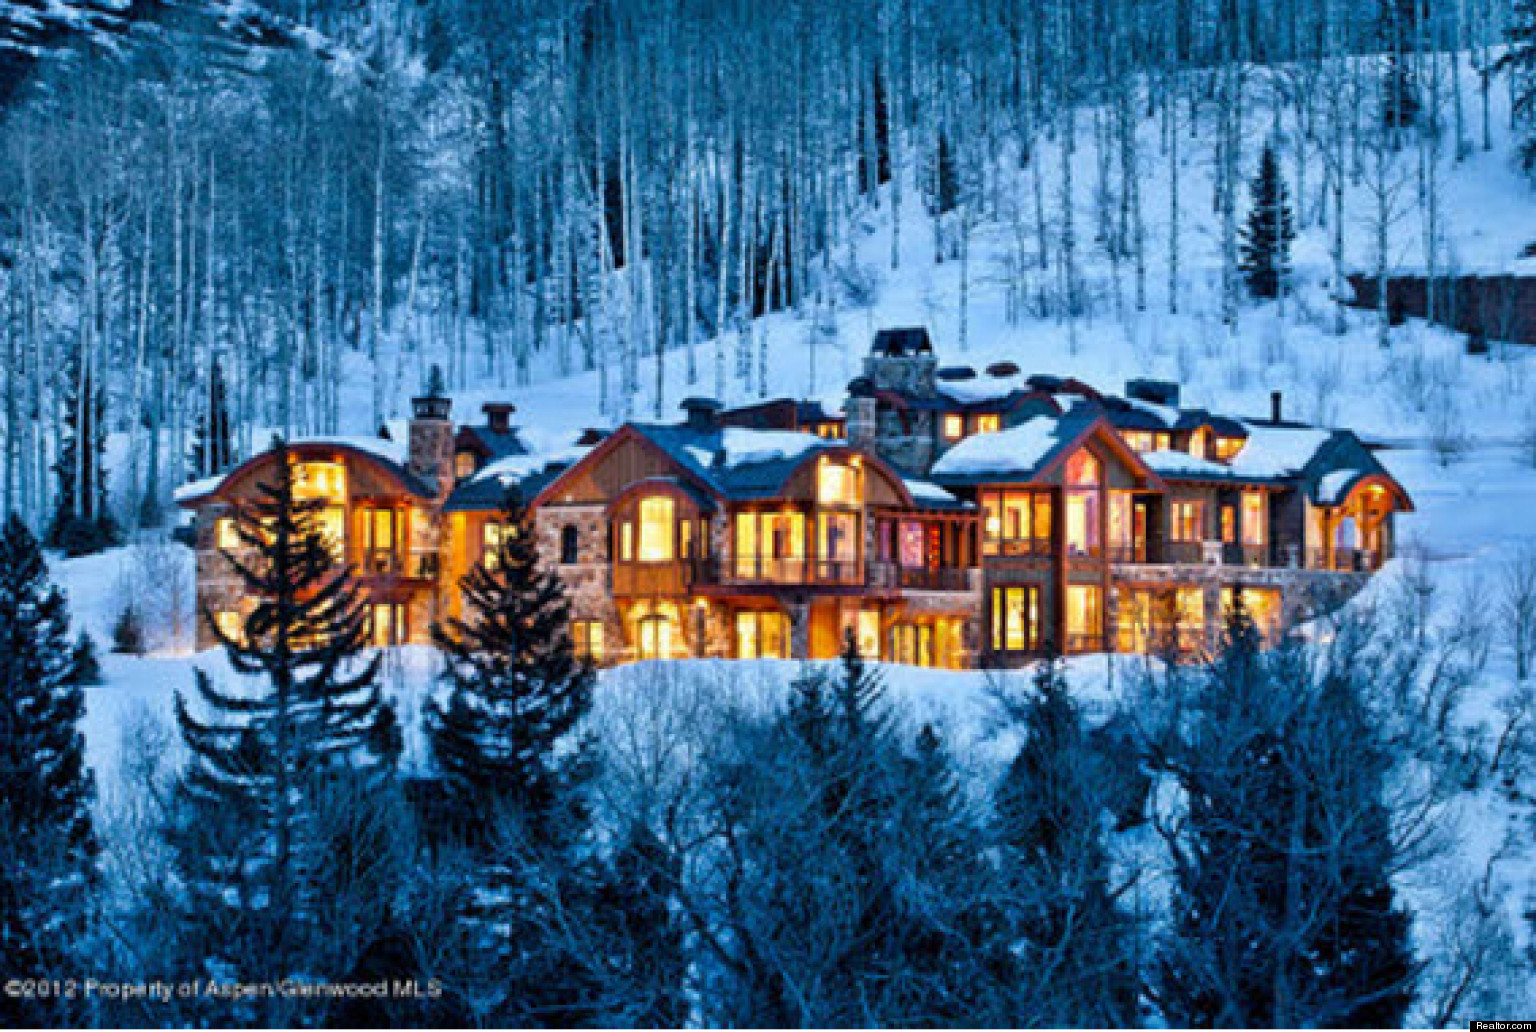 top 10 most expensive homes in colorado in 2012 according